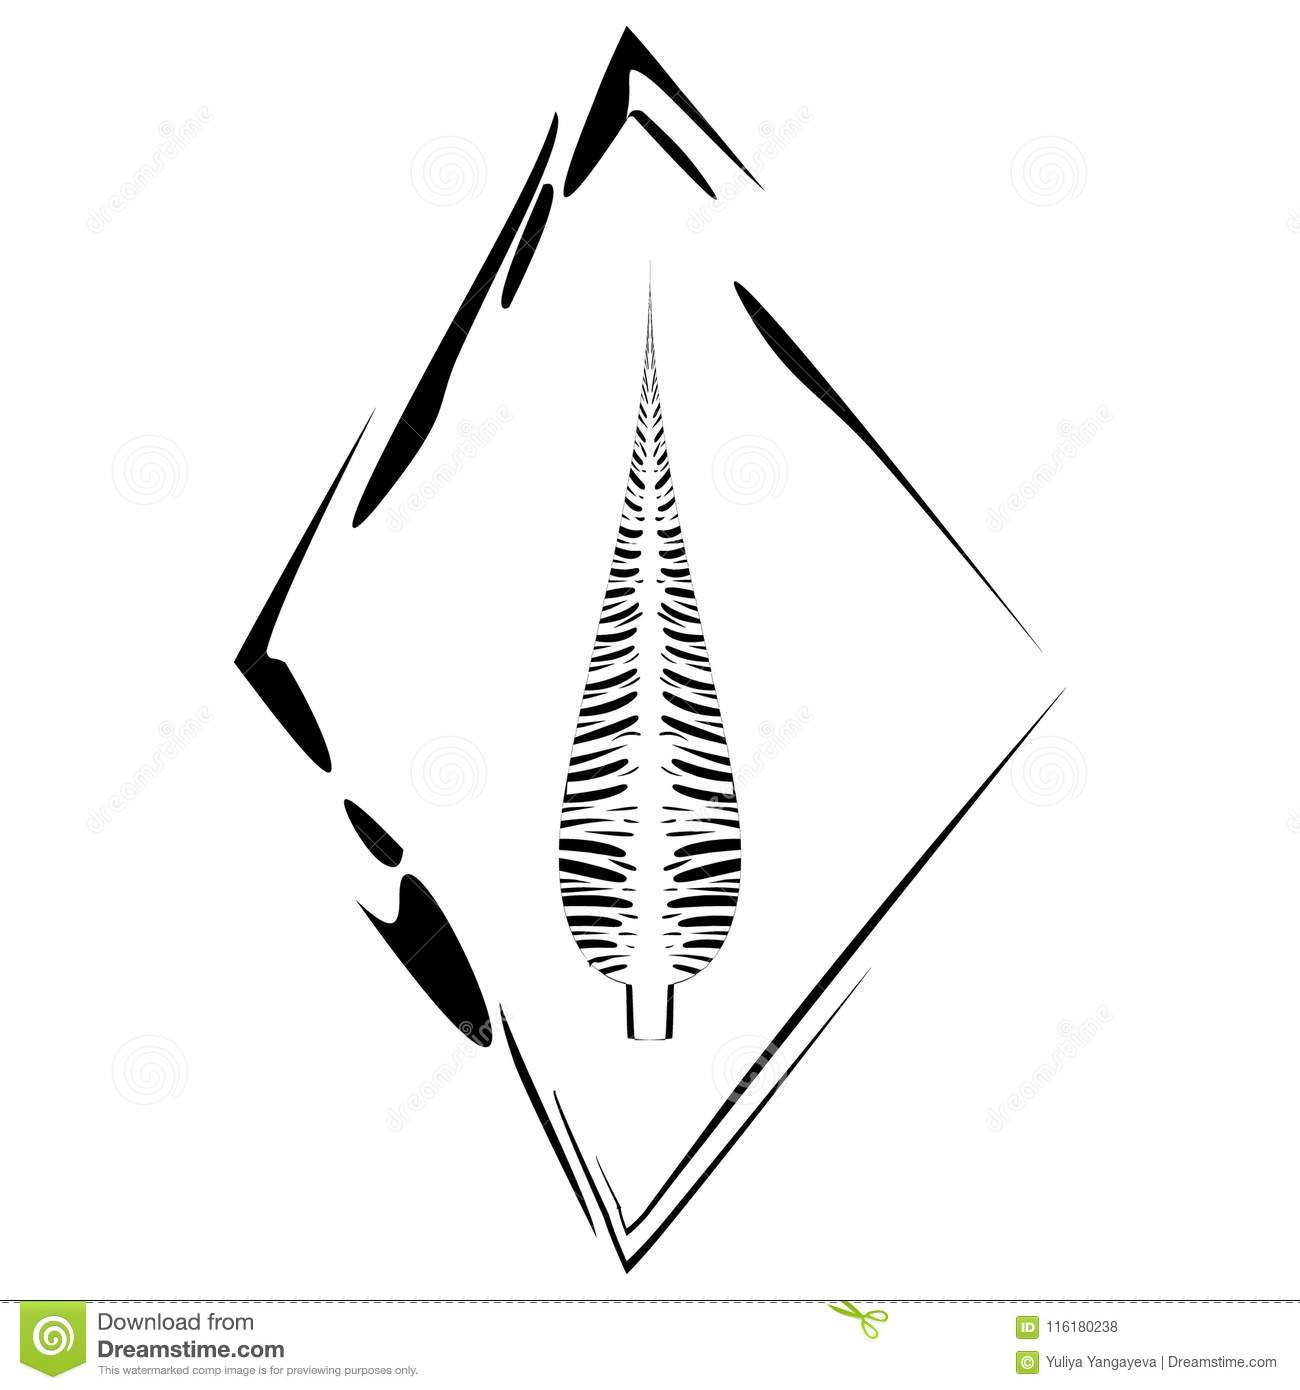 Vector postcard with a feather in a rhombus frame in ethnic style on a white background.